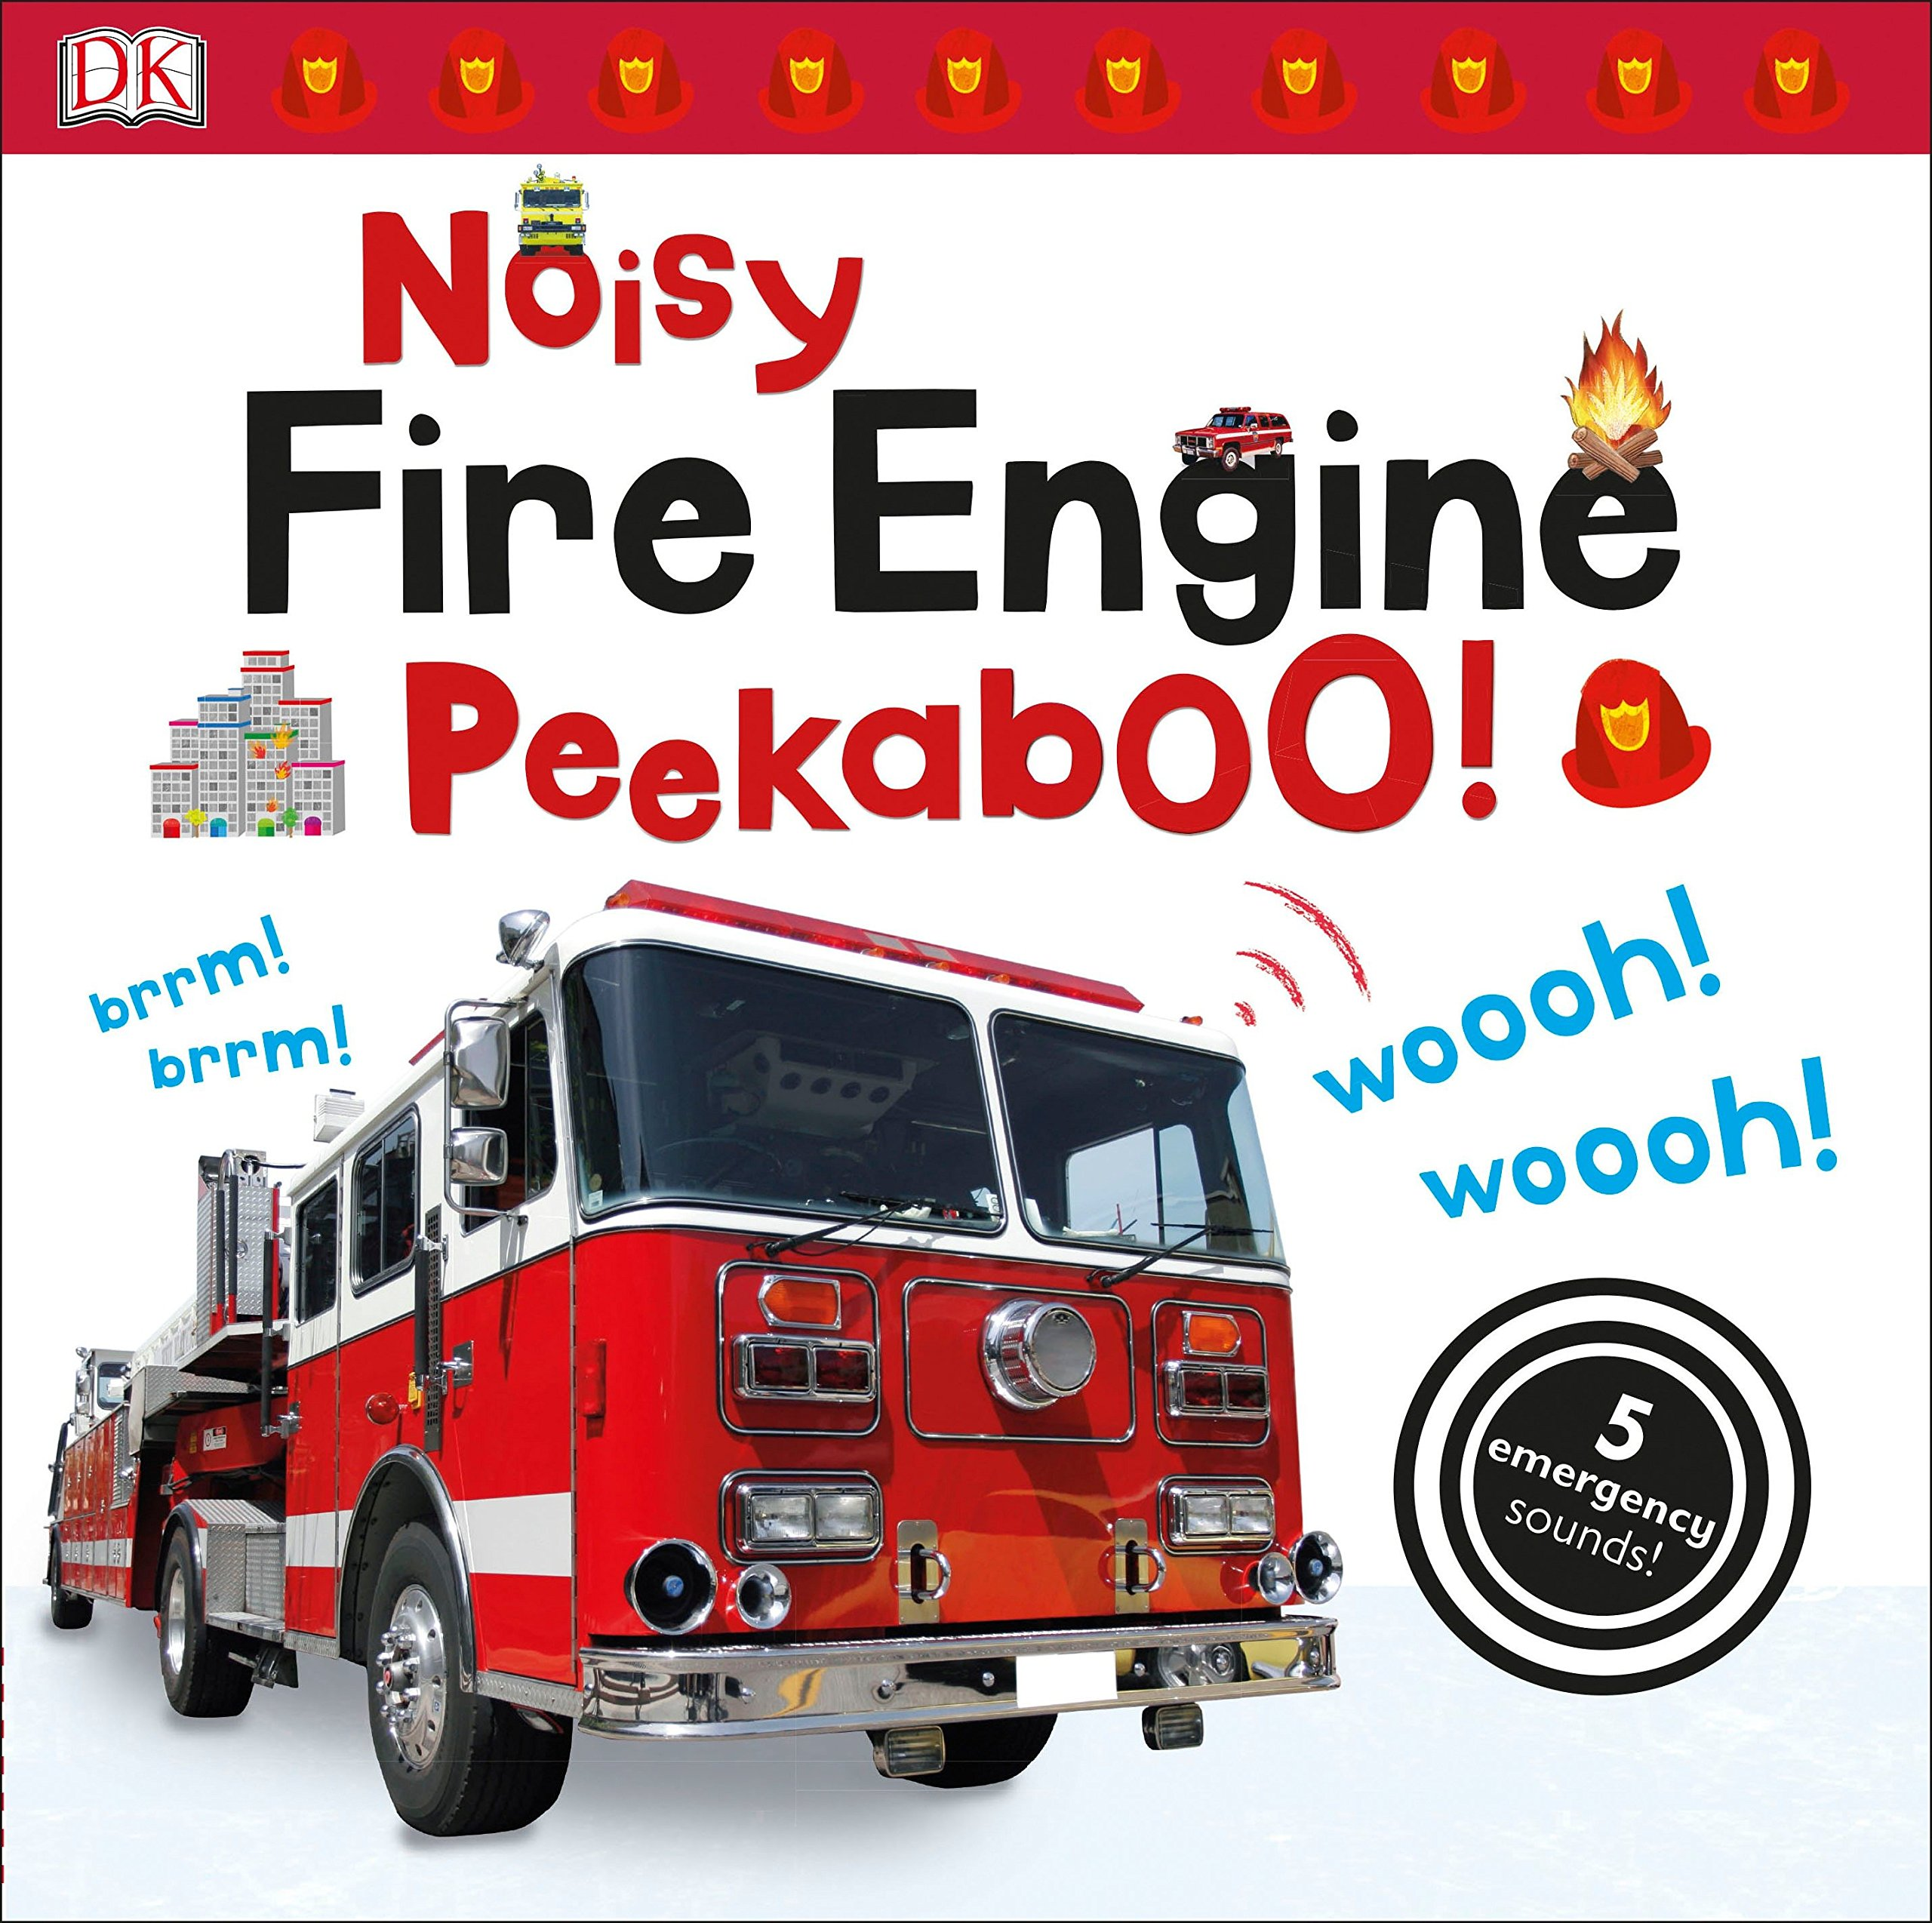 Noisy Fire Engine Peekaboo! by DK Children (Image #1)